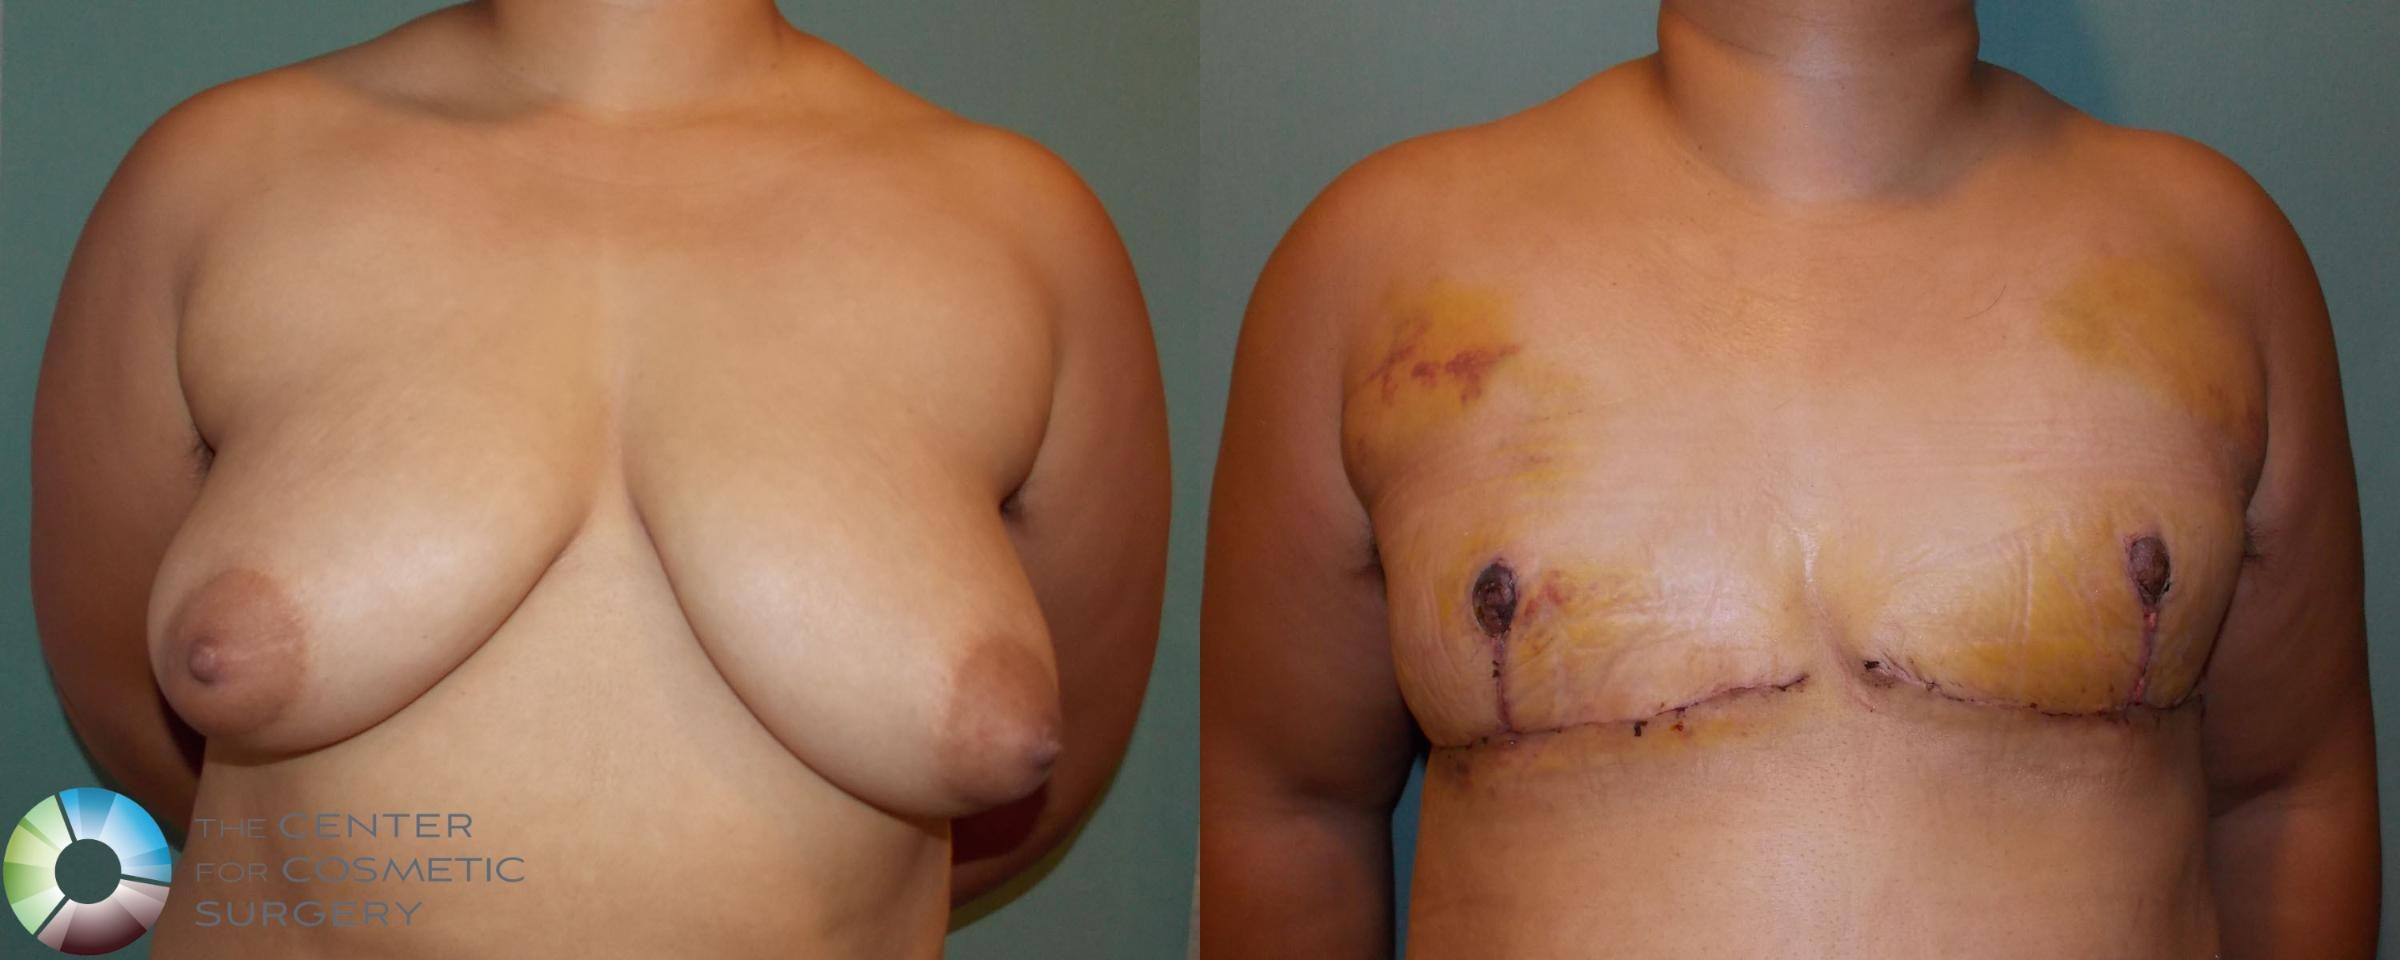 FTM Top Surgery/Chest Masculinization Case 699 Before & After View #1 | Golden, CO | The Center for Cosmetic Surgery